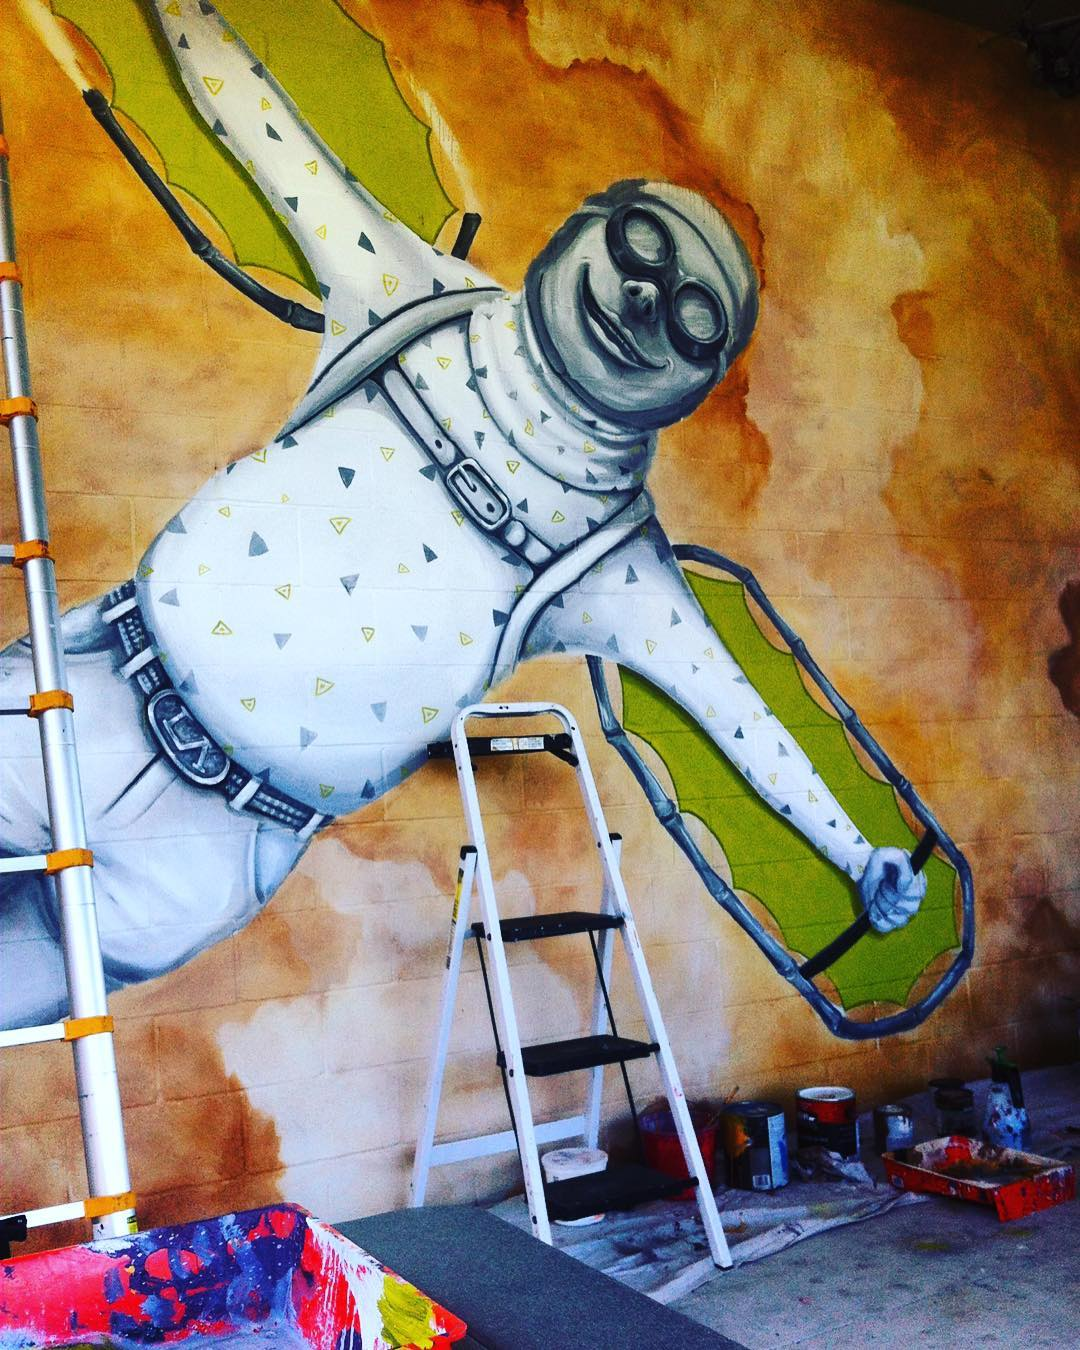 @lucasaokiart in progress. • • For @zilkronthepark • • #atx #austintx #texas #tx #austinliving #beergarden #art #mural #lucasaoki #spratx #spratxfamily